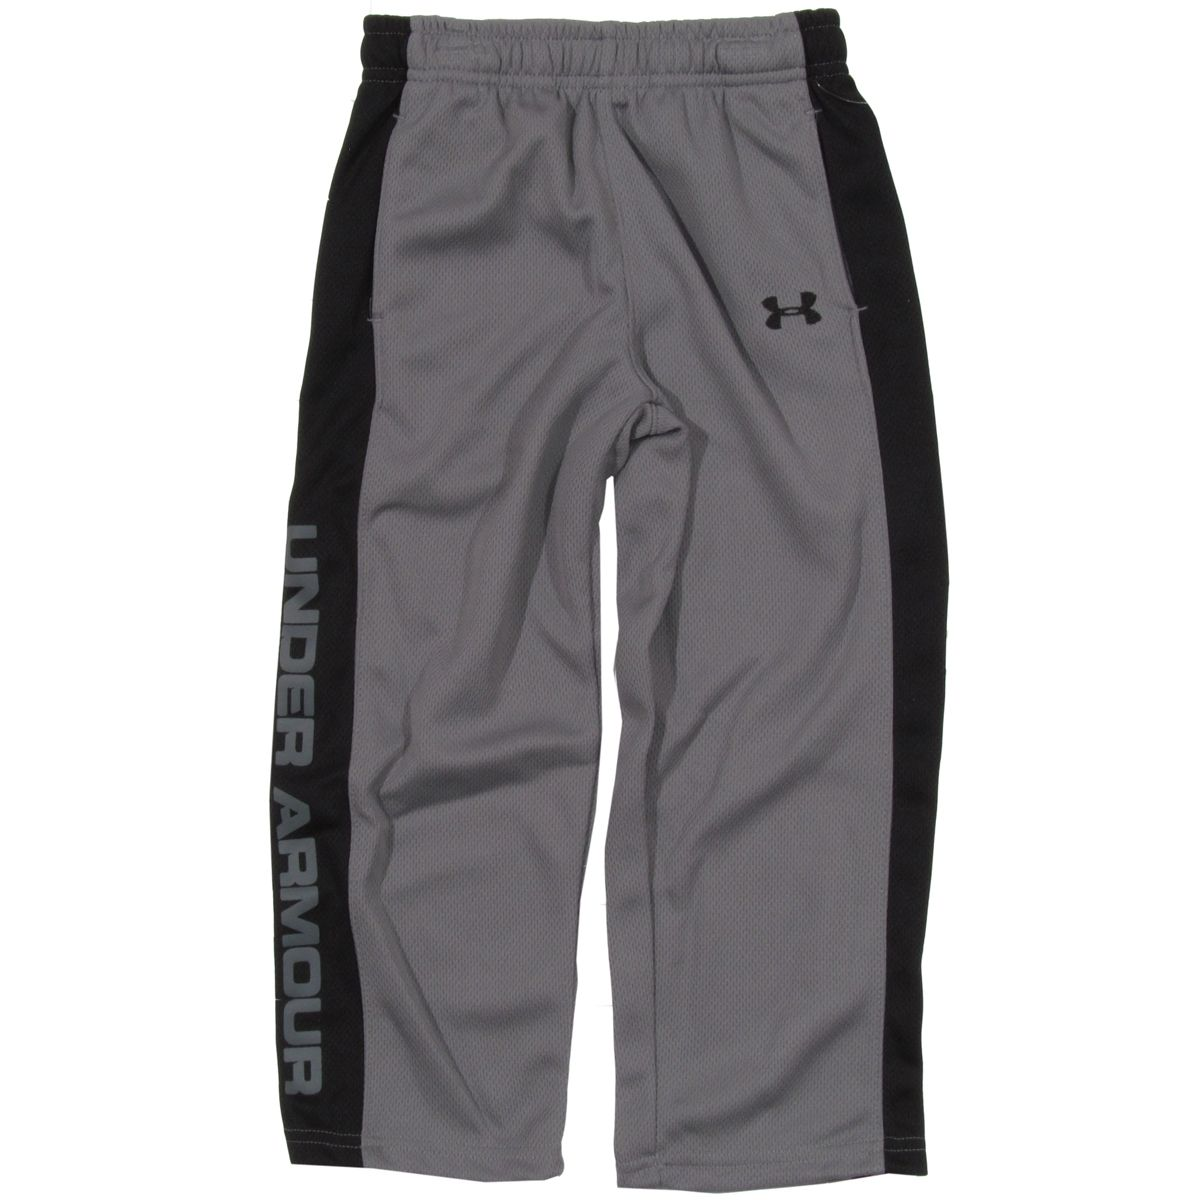 Under Armour Baby Pants for Boys tentalltrees.com size 18 months ...